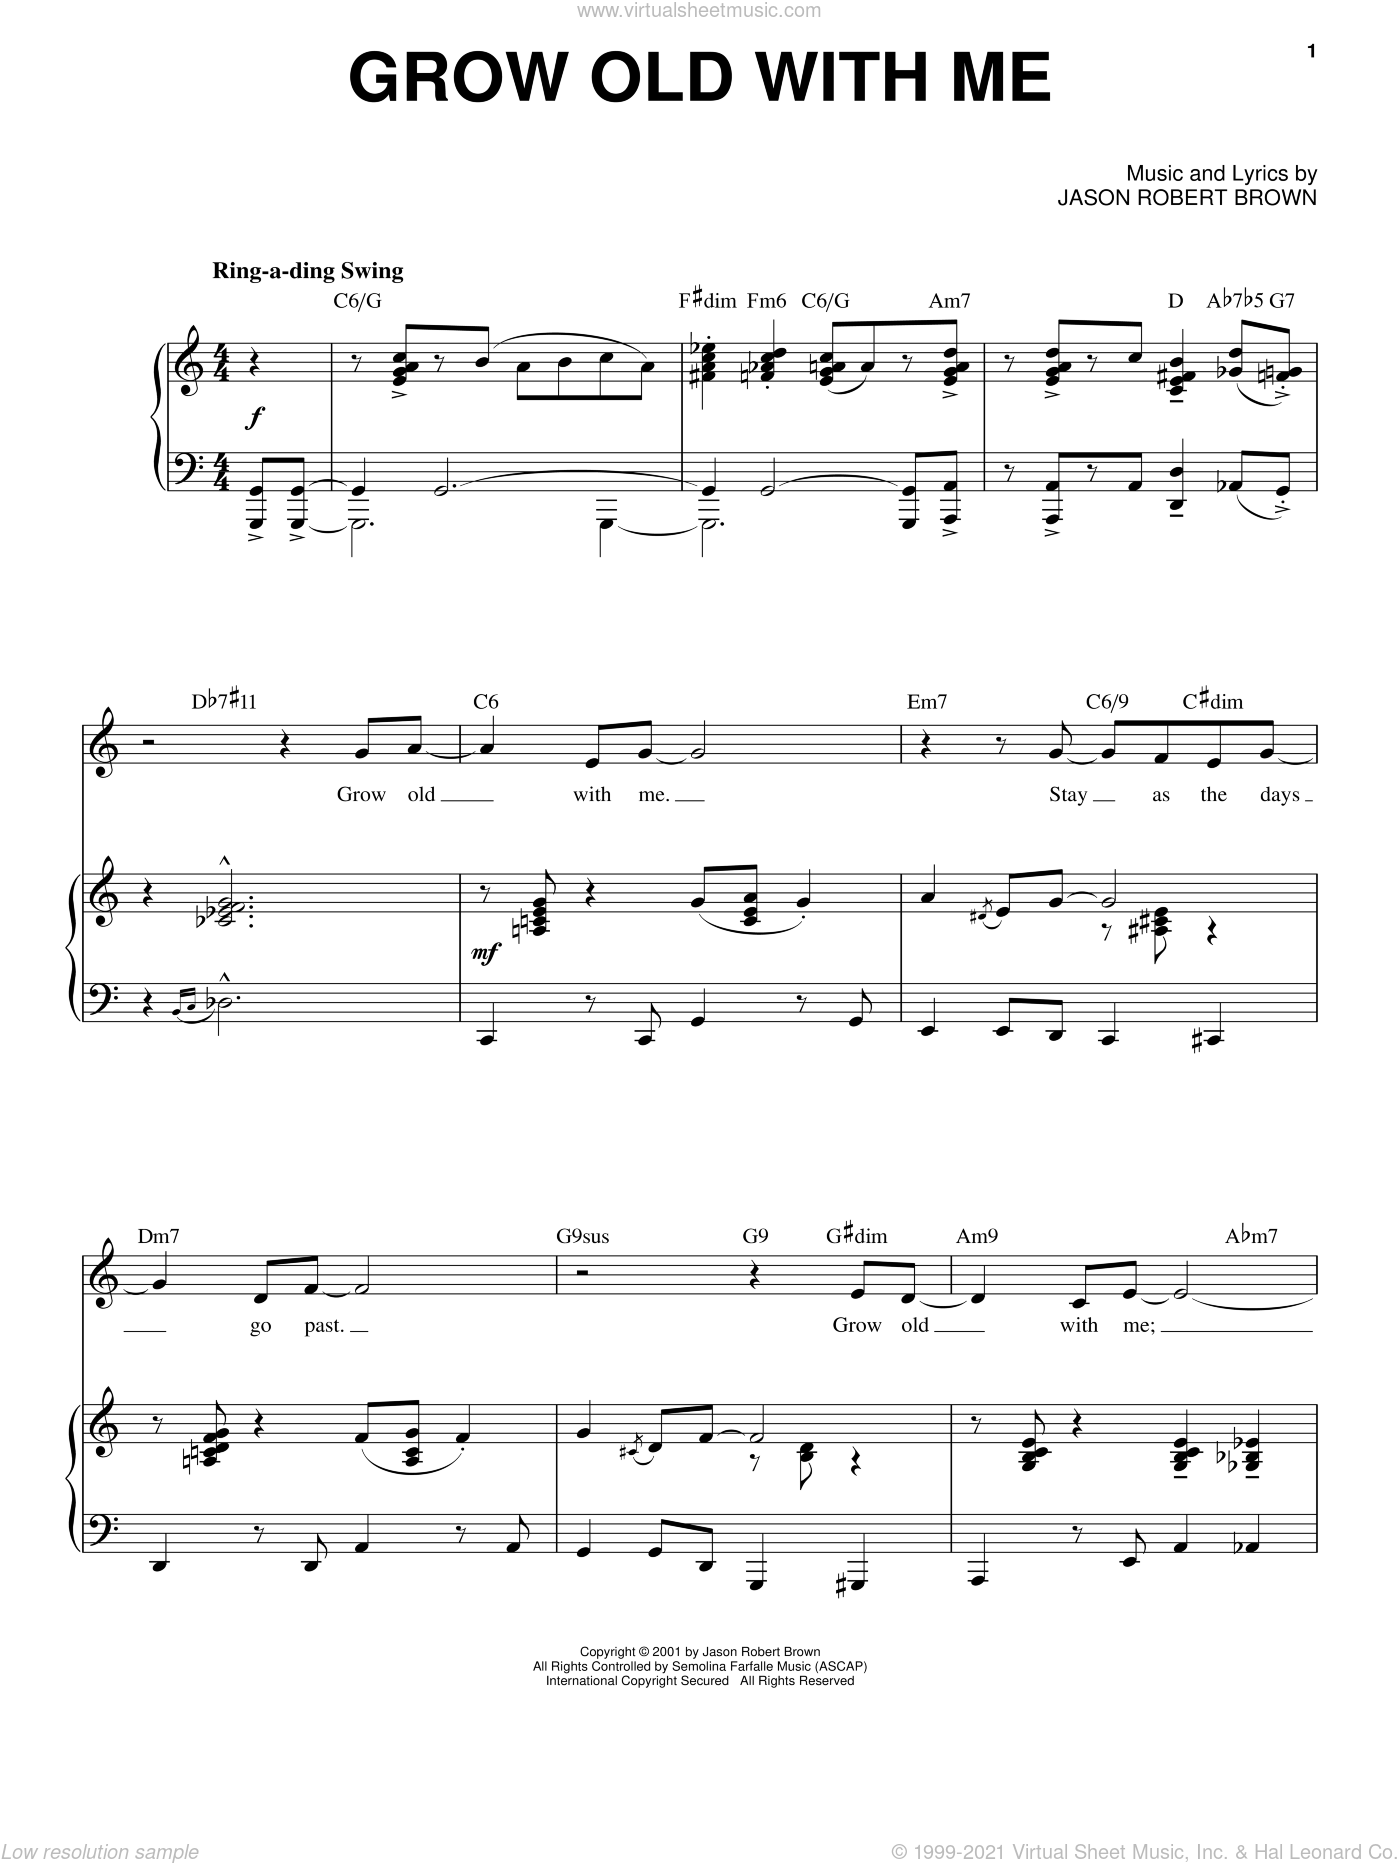 Grow Old With Me (from Wearing Someone Else's Clothes) sheet music for voice and piano by Jason Robert Brown, intermediate skill level